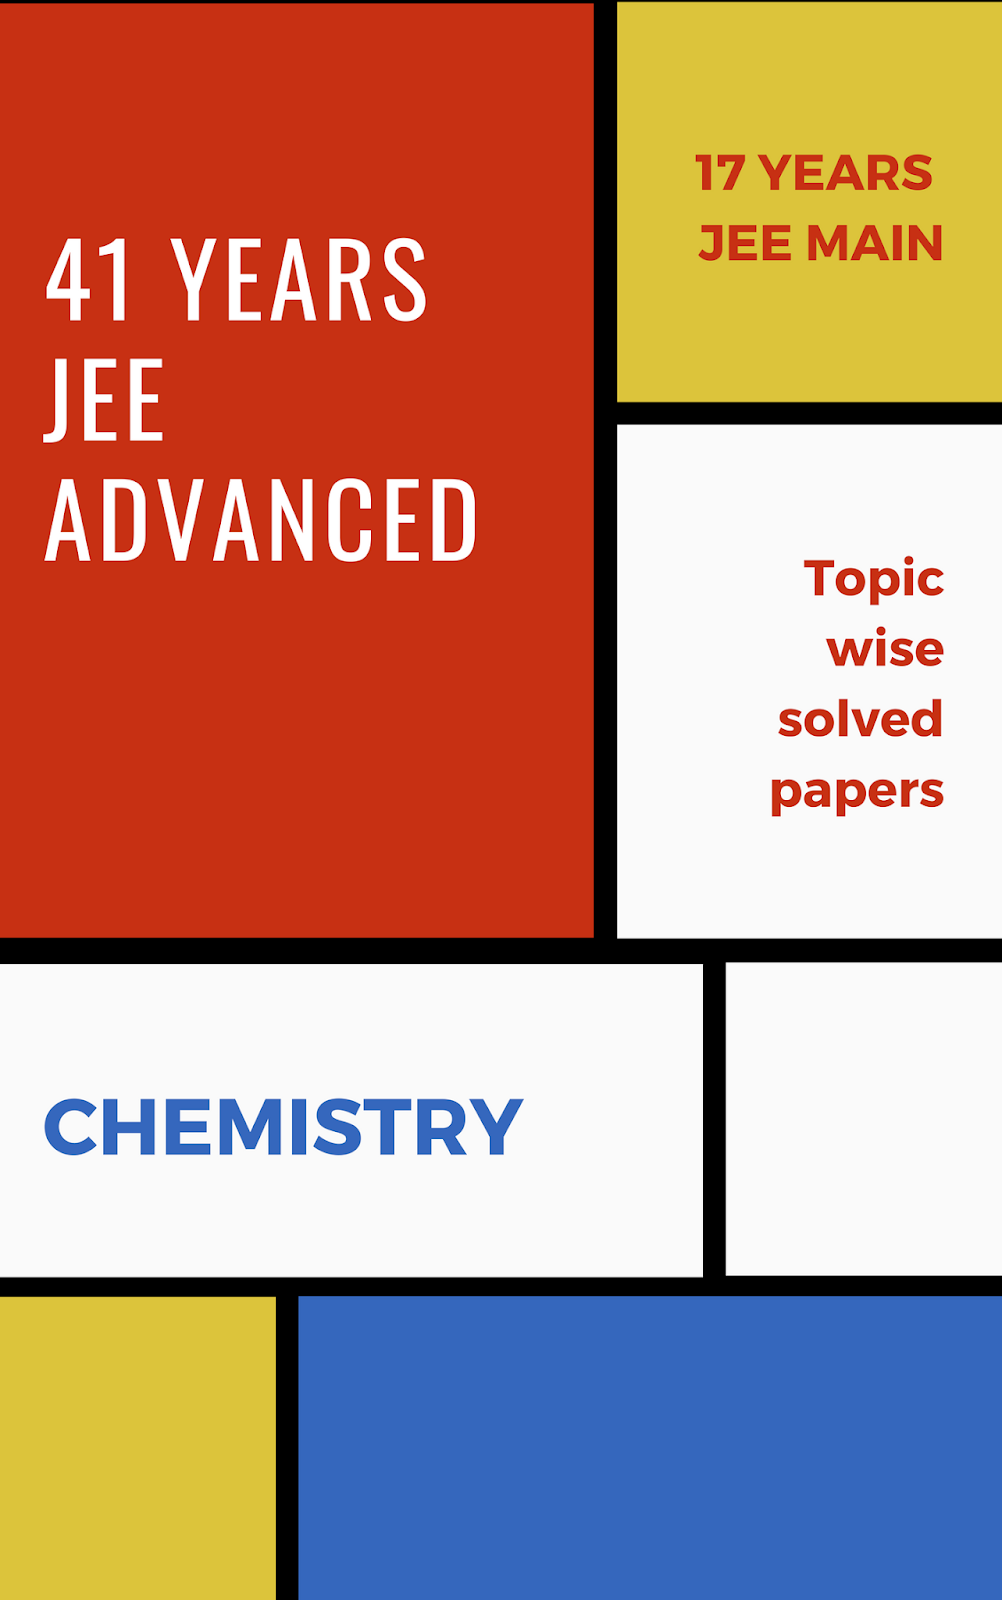 41 Previous Years IIT JEE Chemistry | 17 Years AIEEE & JEE Main | With Solution| Chapter wise JEE main, AIEEE and IIT-JEE, JEE Advanced Chemistry